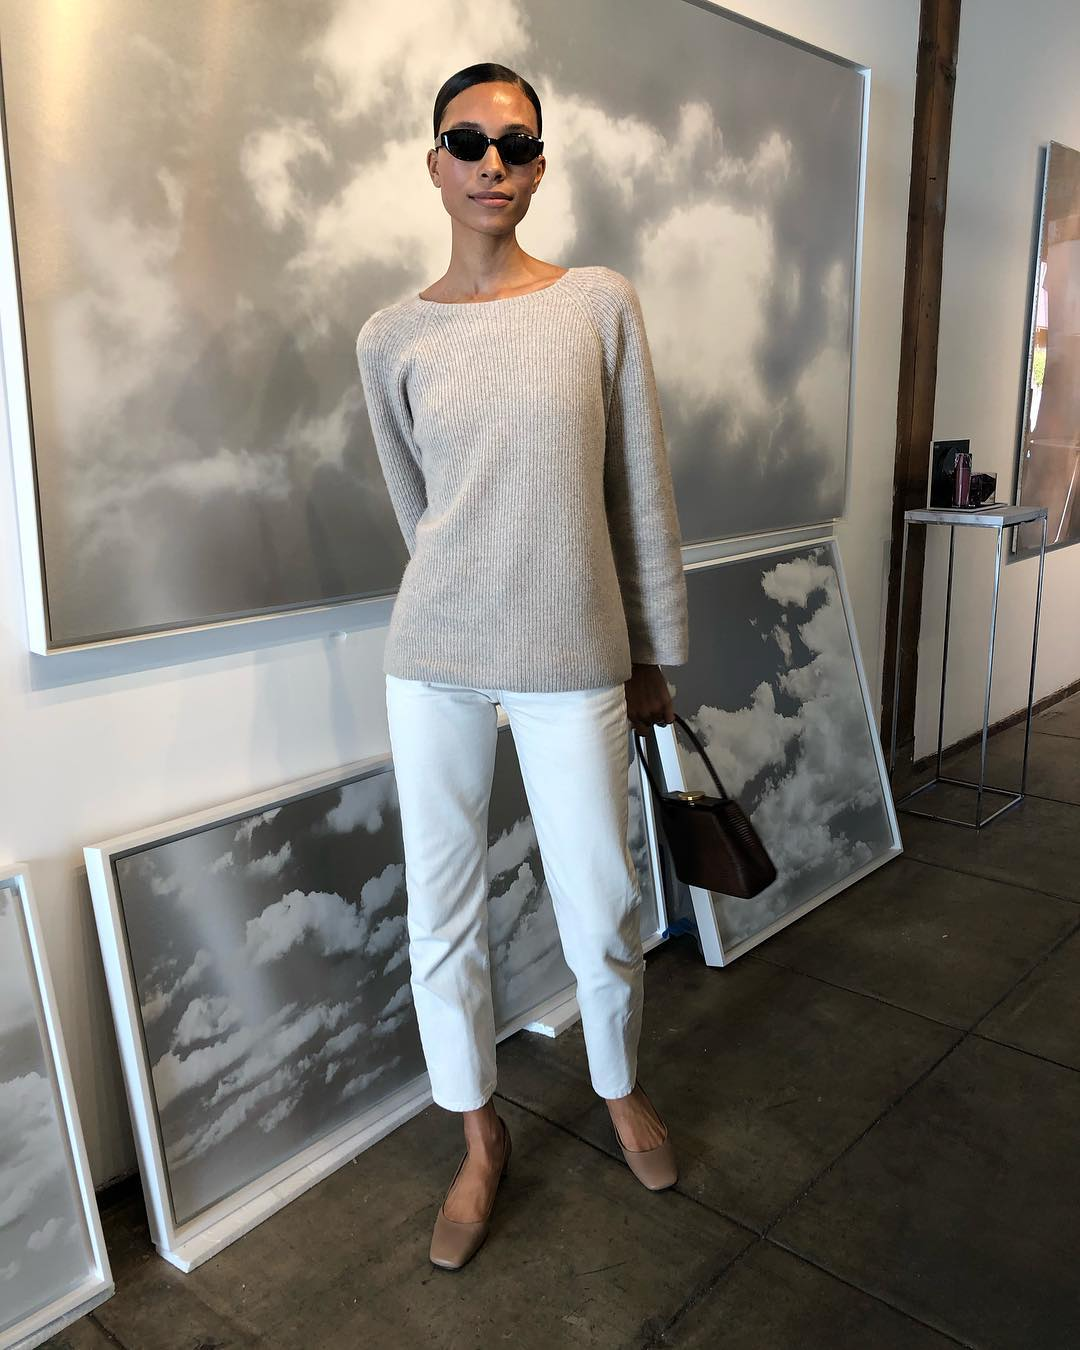 Neutral Spring Outfit Inspiration — Tylynn Nguyen in black cat-eye sunglasses, a biege sweater, white jeans, and tan square-toe shoes